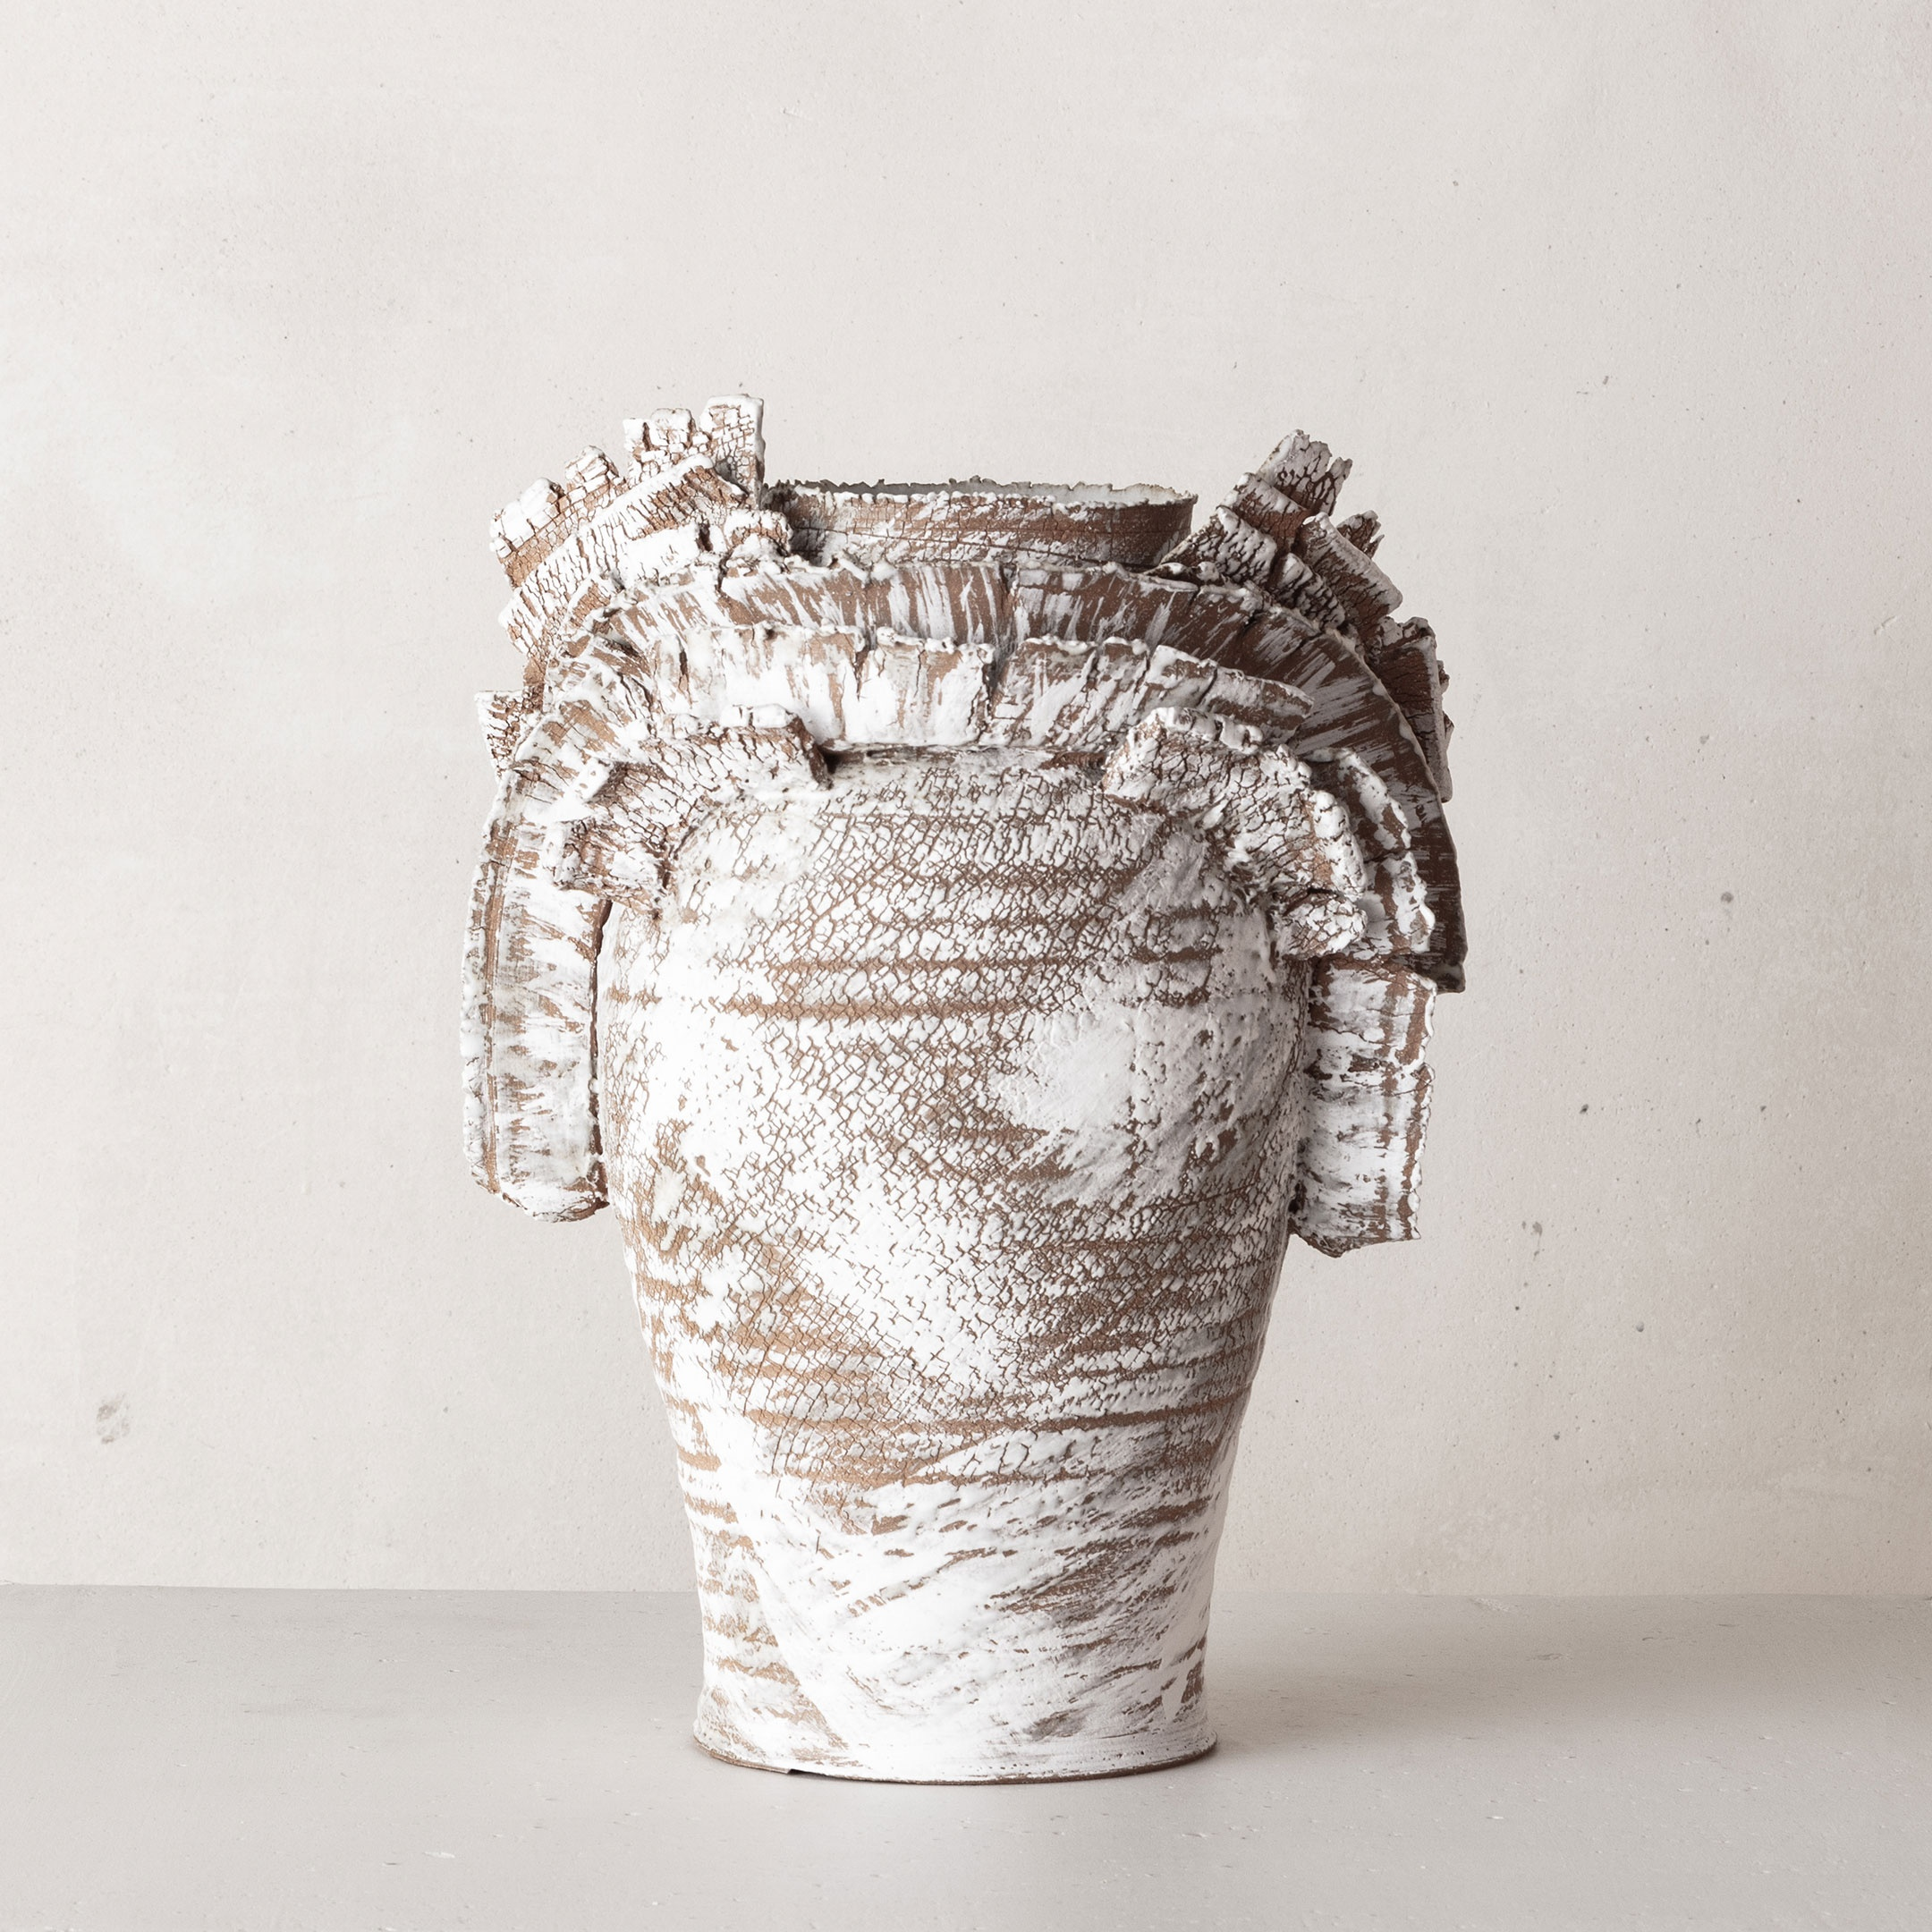 CHTHONIC VESSEL 20Peter Speliopoulos, Peter Speliopoulos Ceramics, Peter Speliopoulos Artist, Peter Speliopoulos Fashion Designer, Contemporary Ceramics, Contemporary Greek Ceramics, Interior Design Accessories.